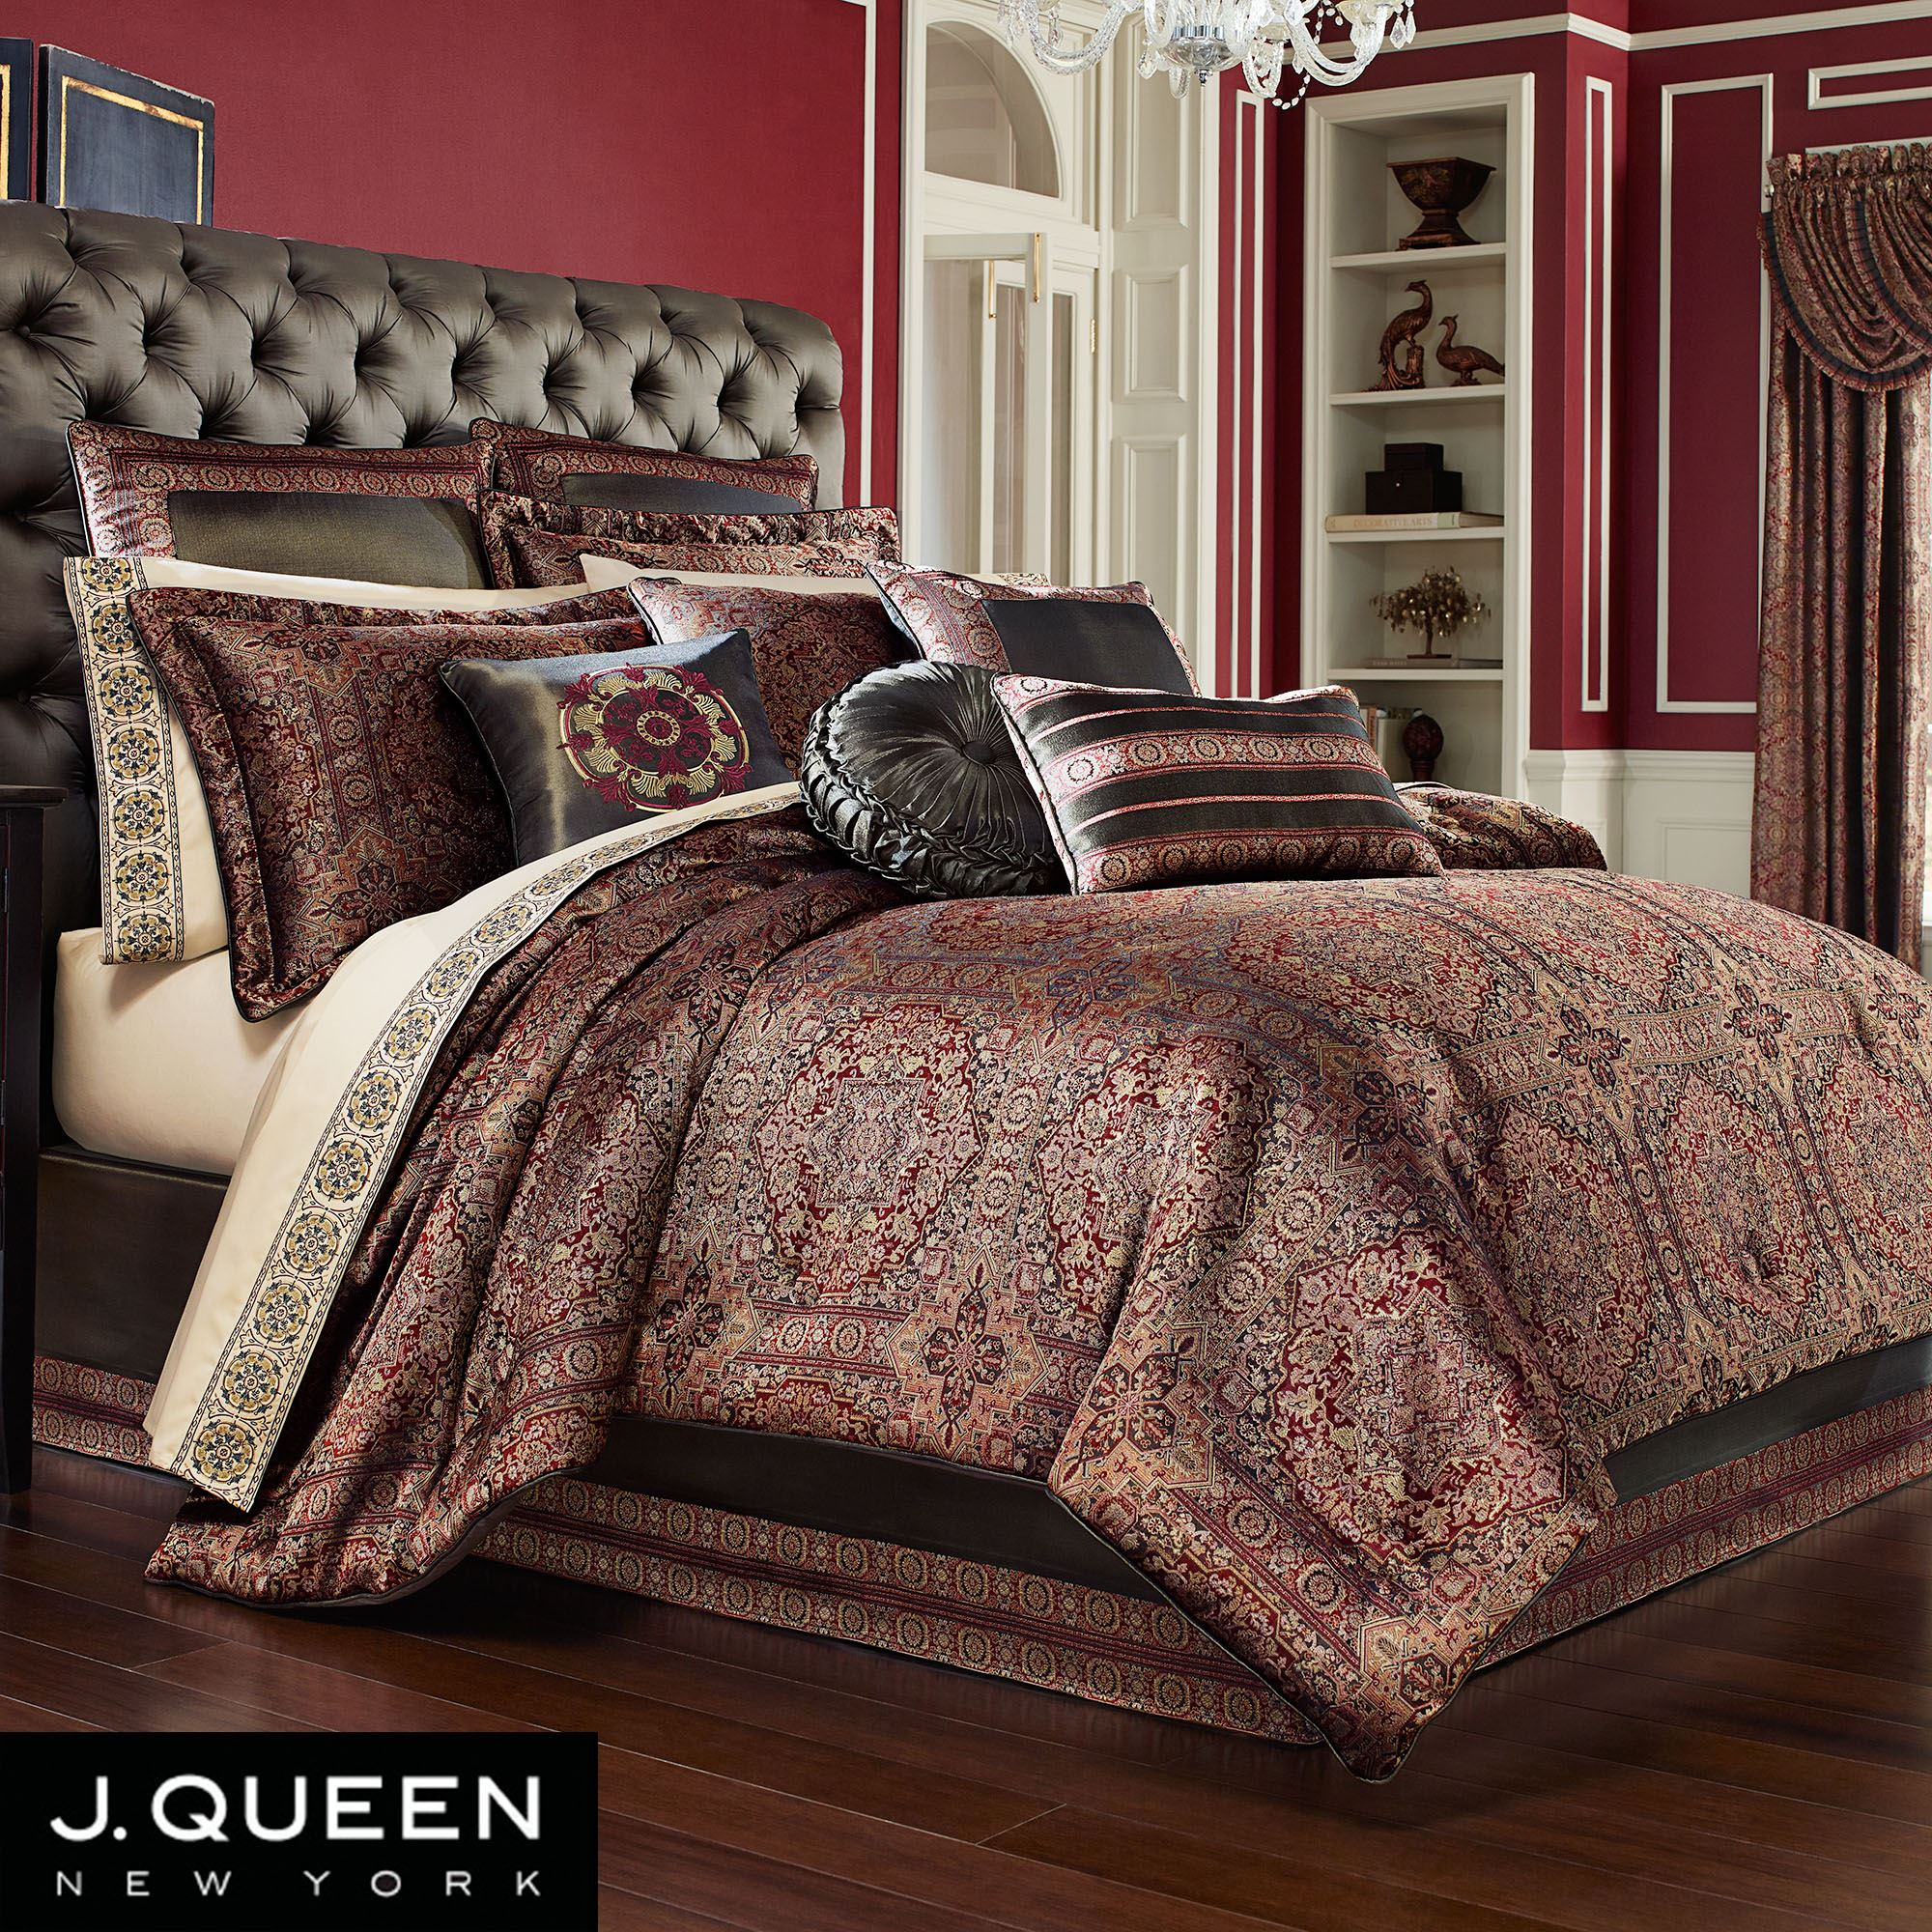 queen comforter set bed large bedspread size cal quilt extra frame matele white matelasse king sets headboard bedroom footboard quilts